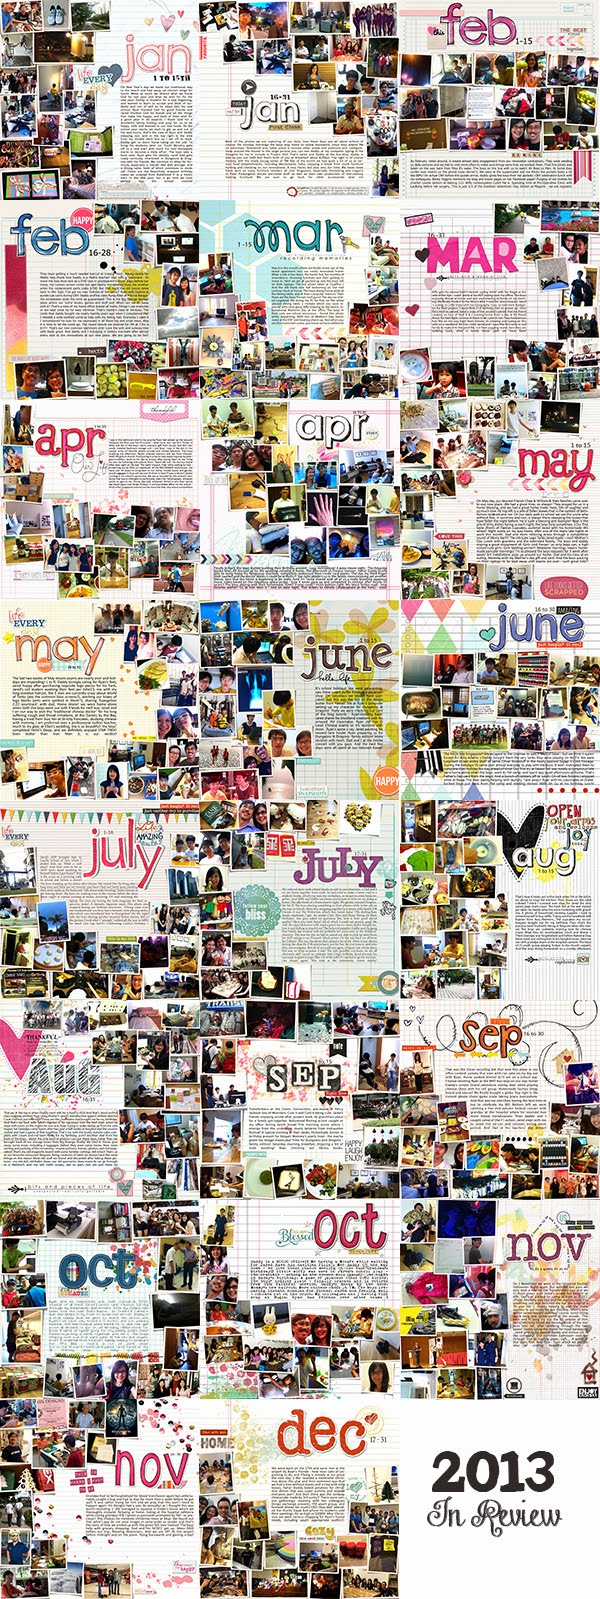 Monthly templates P365 a photo a day